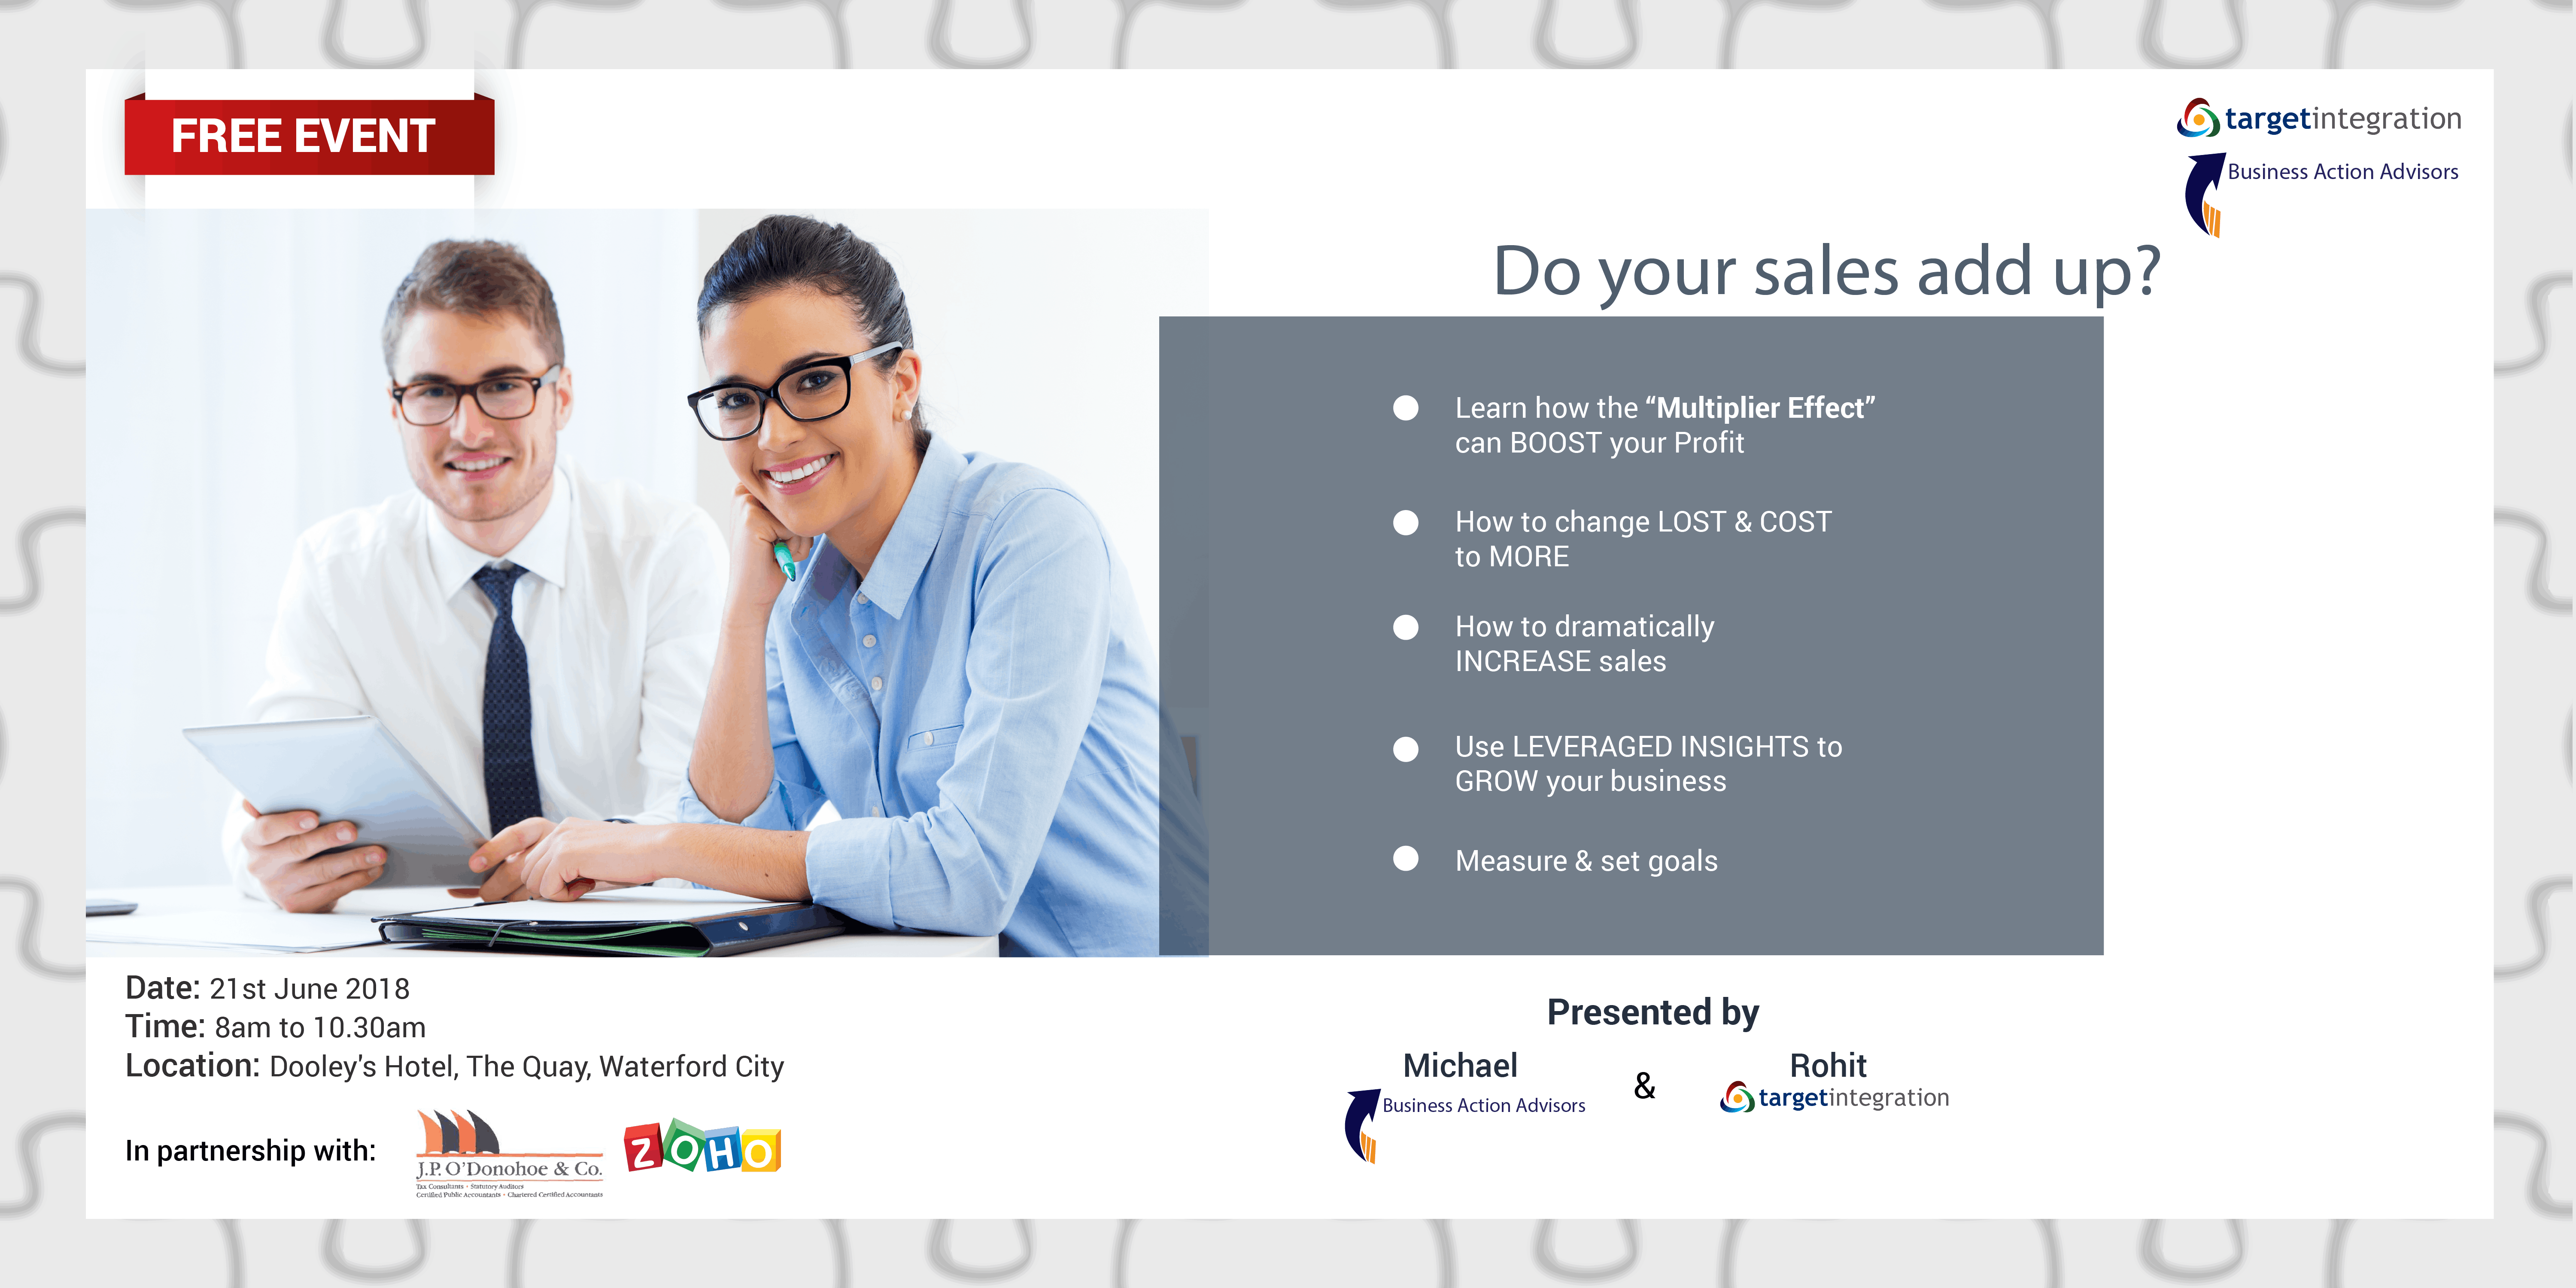 Do your sales add up